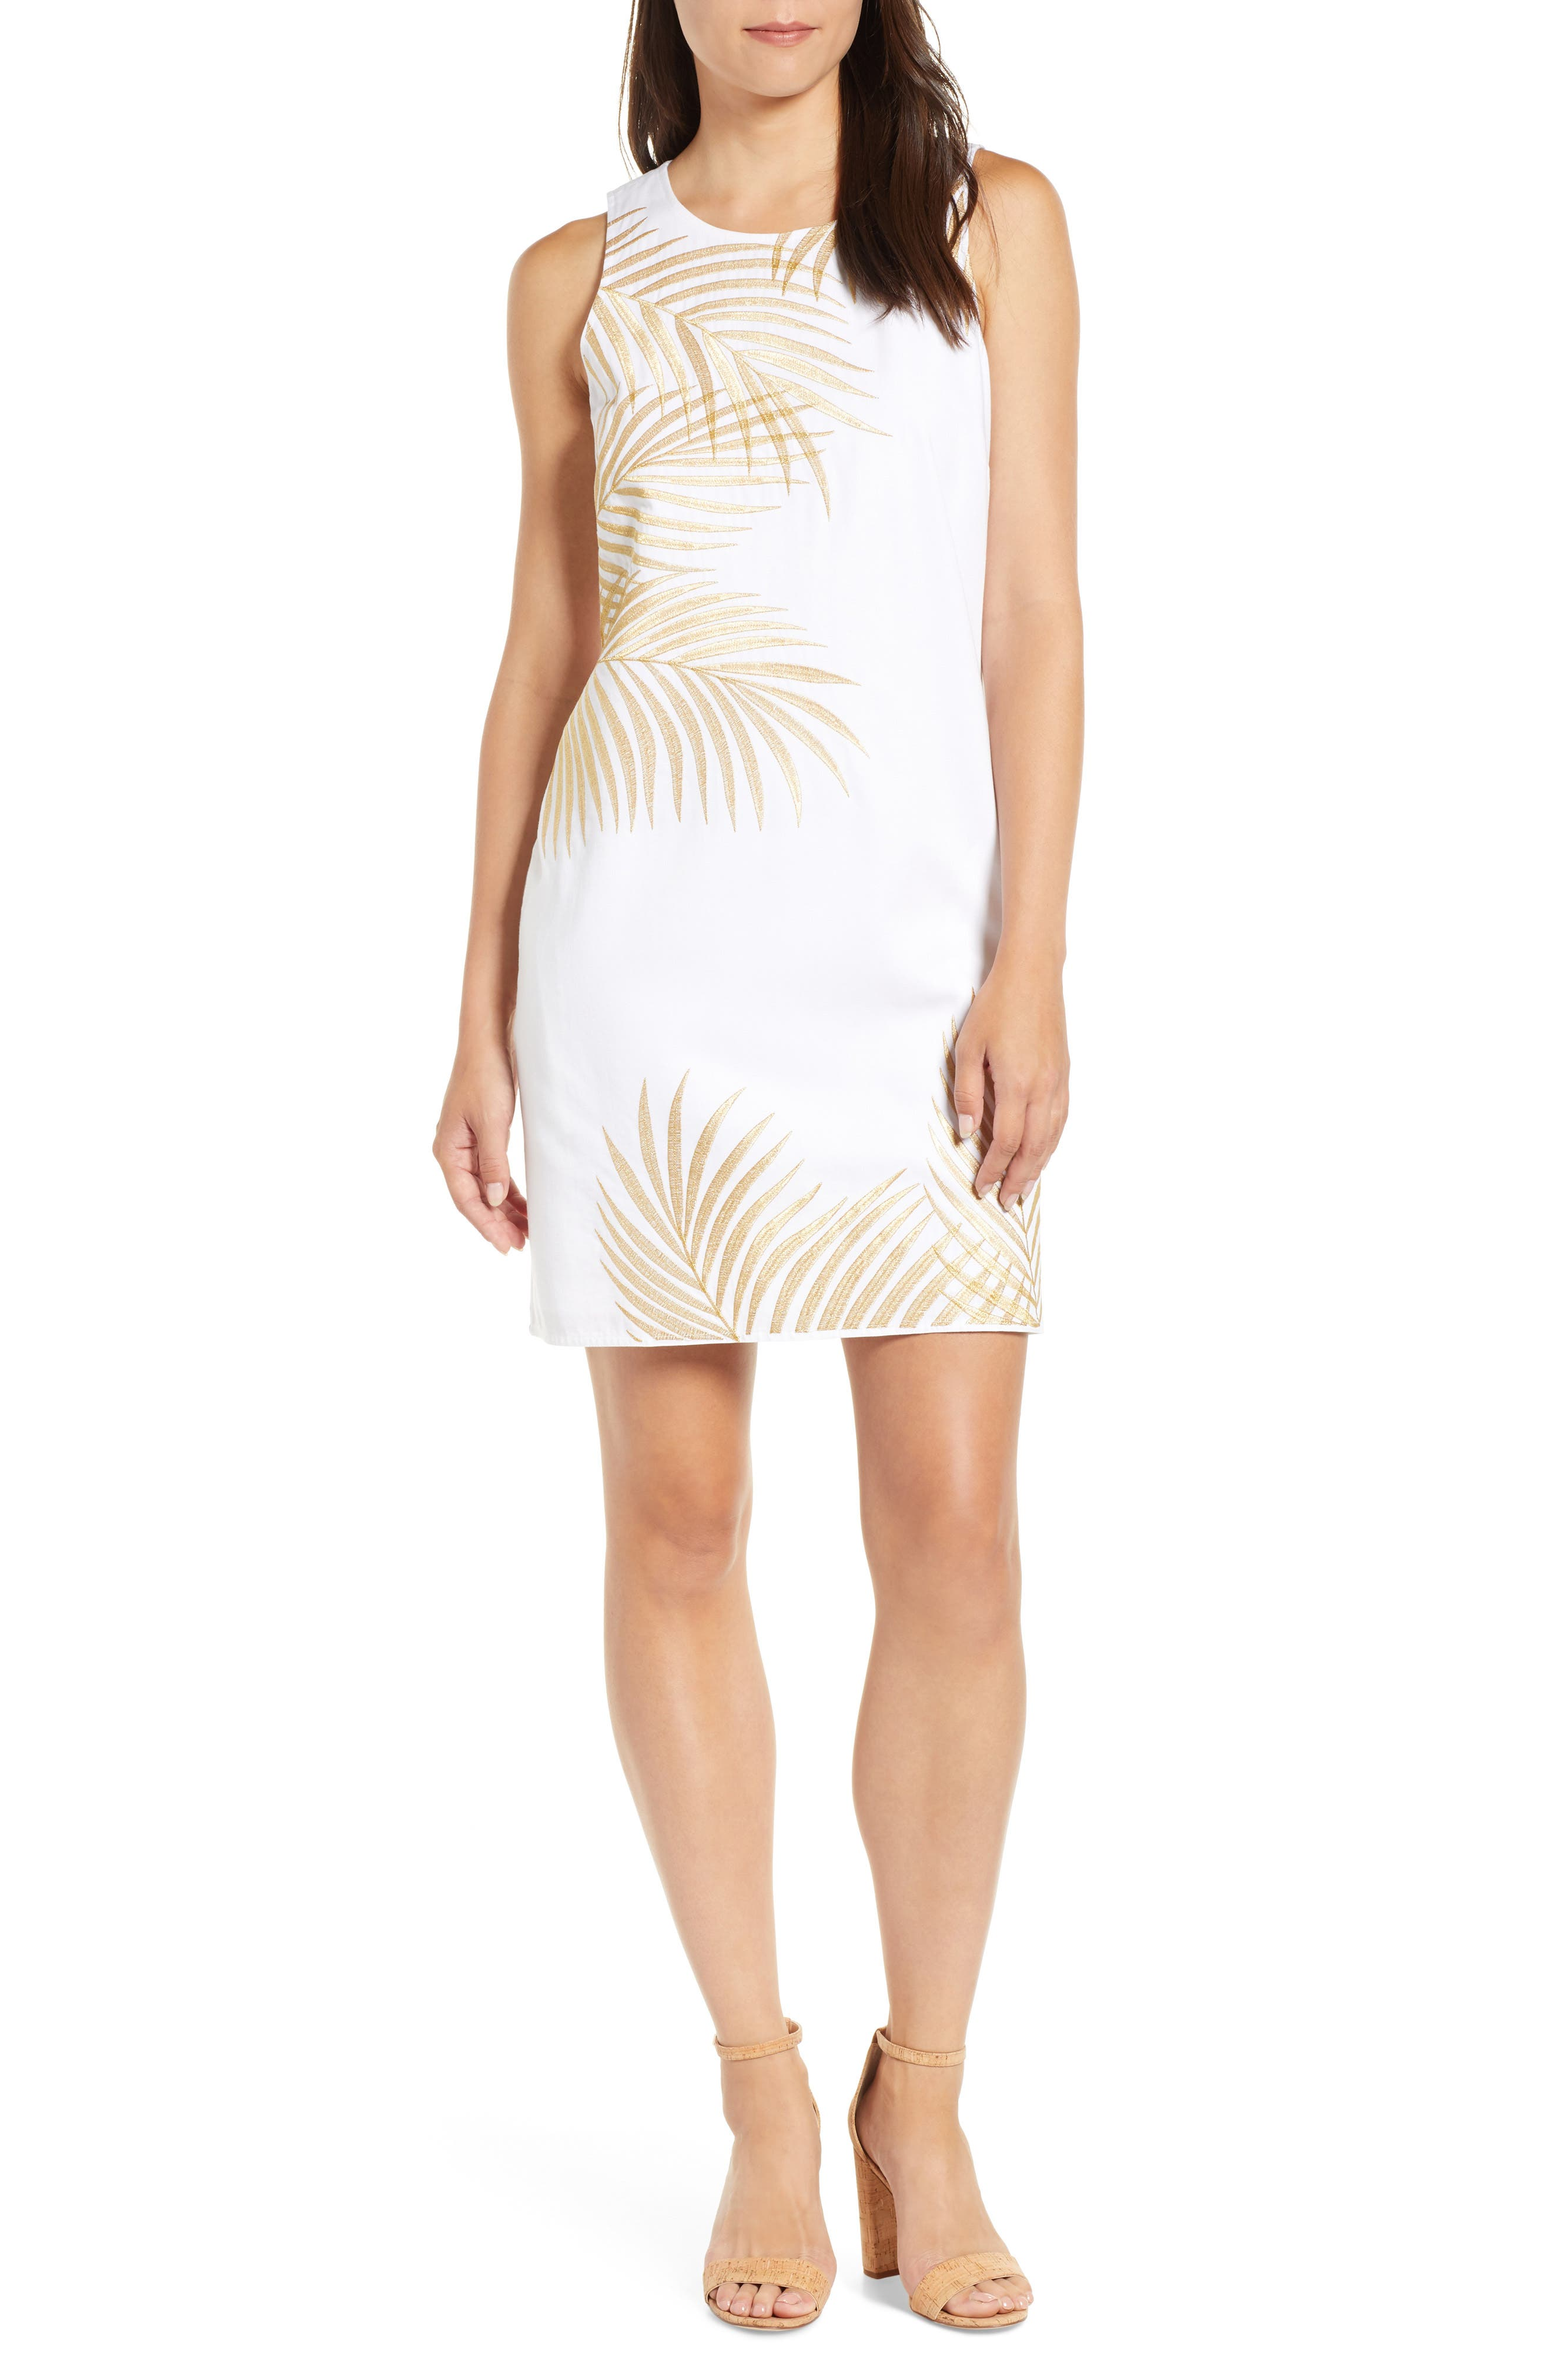 Lanailette Embroidered Shift Dress,                         Main,                         color, 100